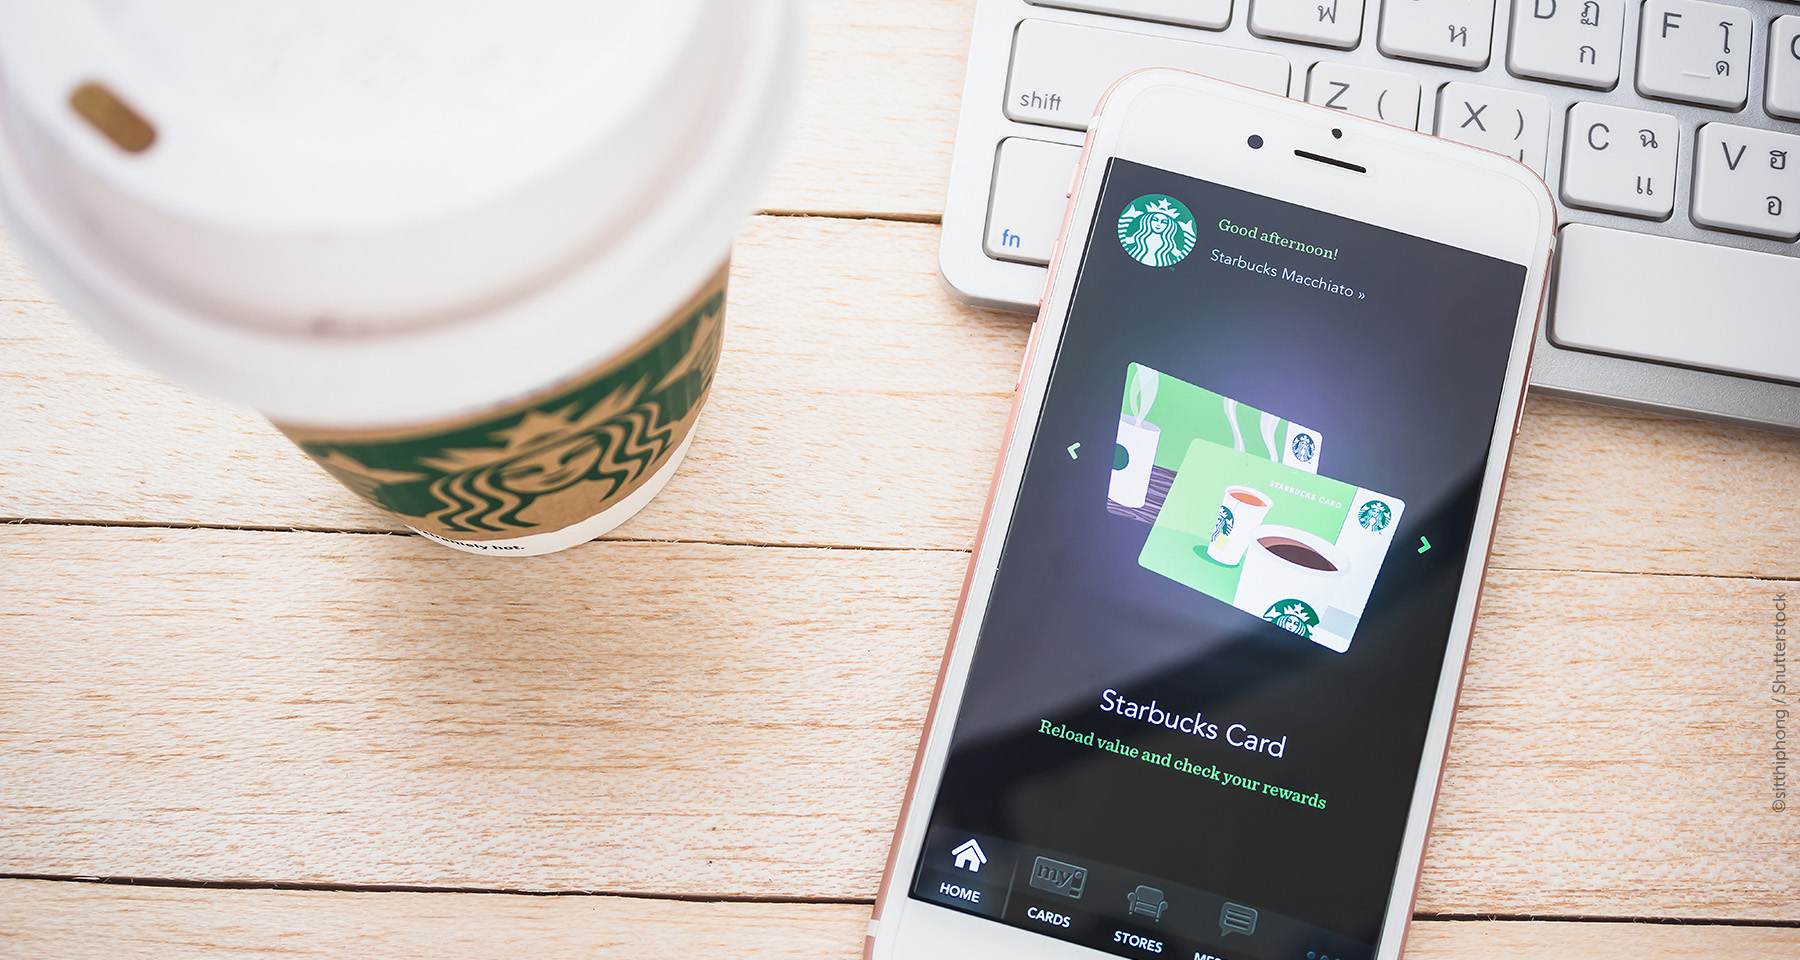 3 ways mobile payments benefit media companies